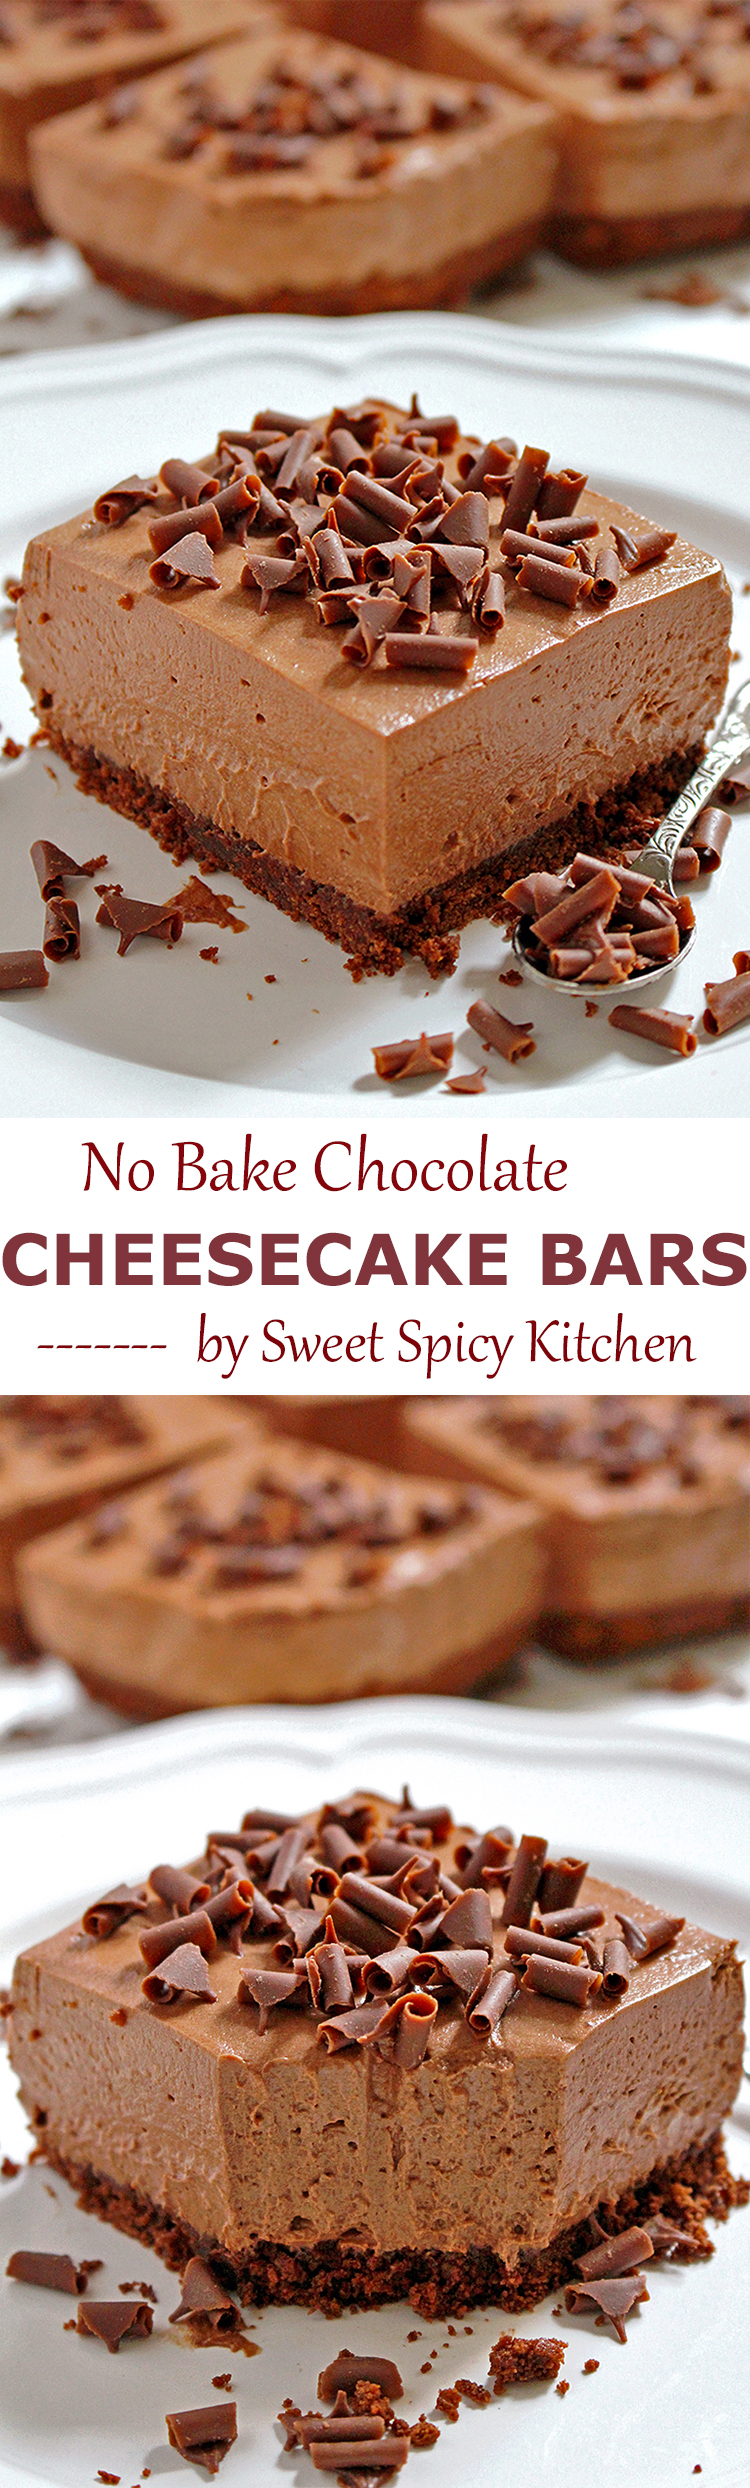 Untitled-10 No Bake Chocolate Cheesecake Bars